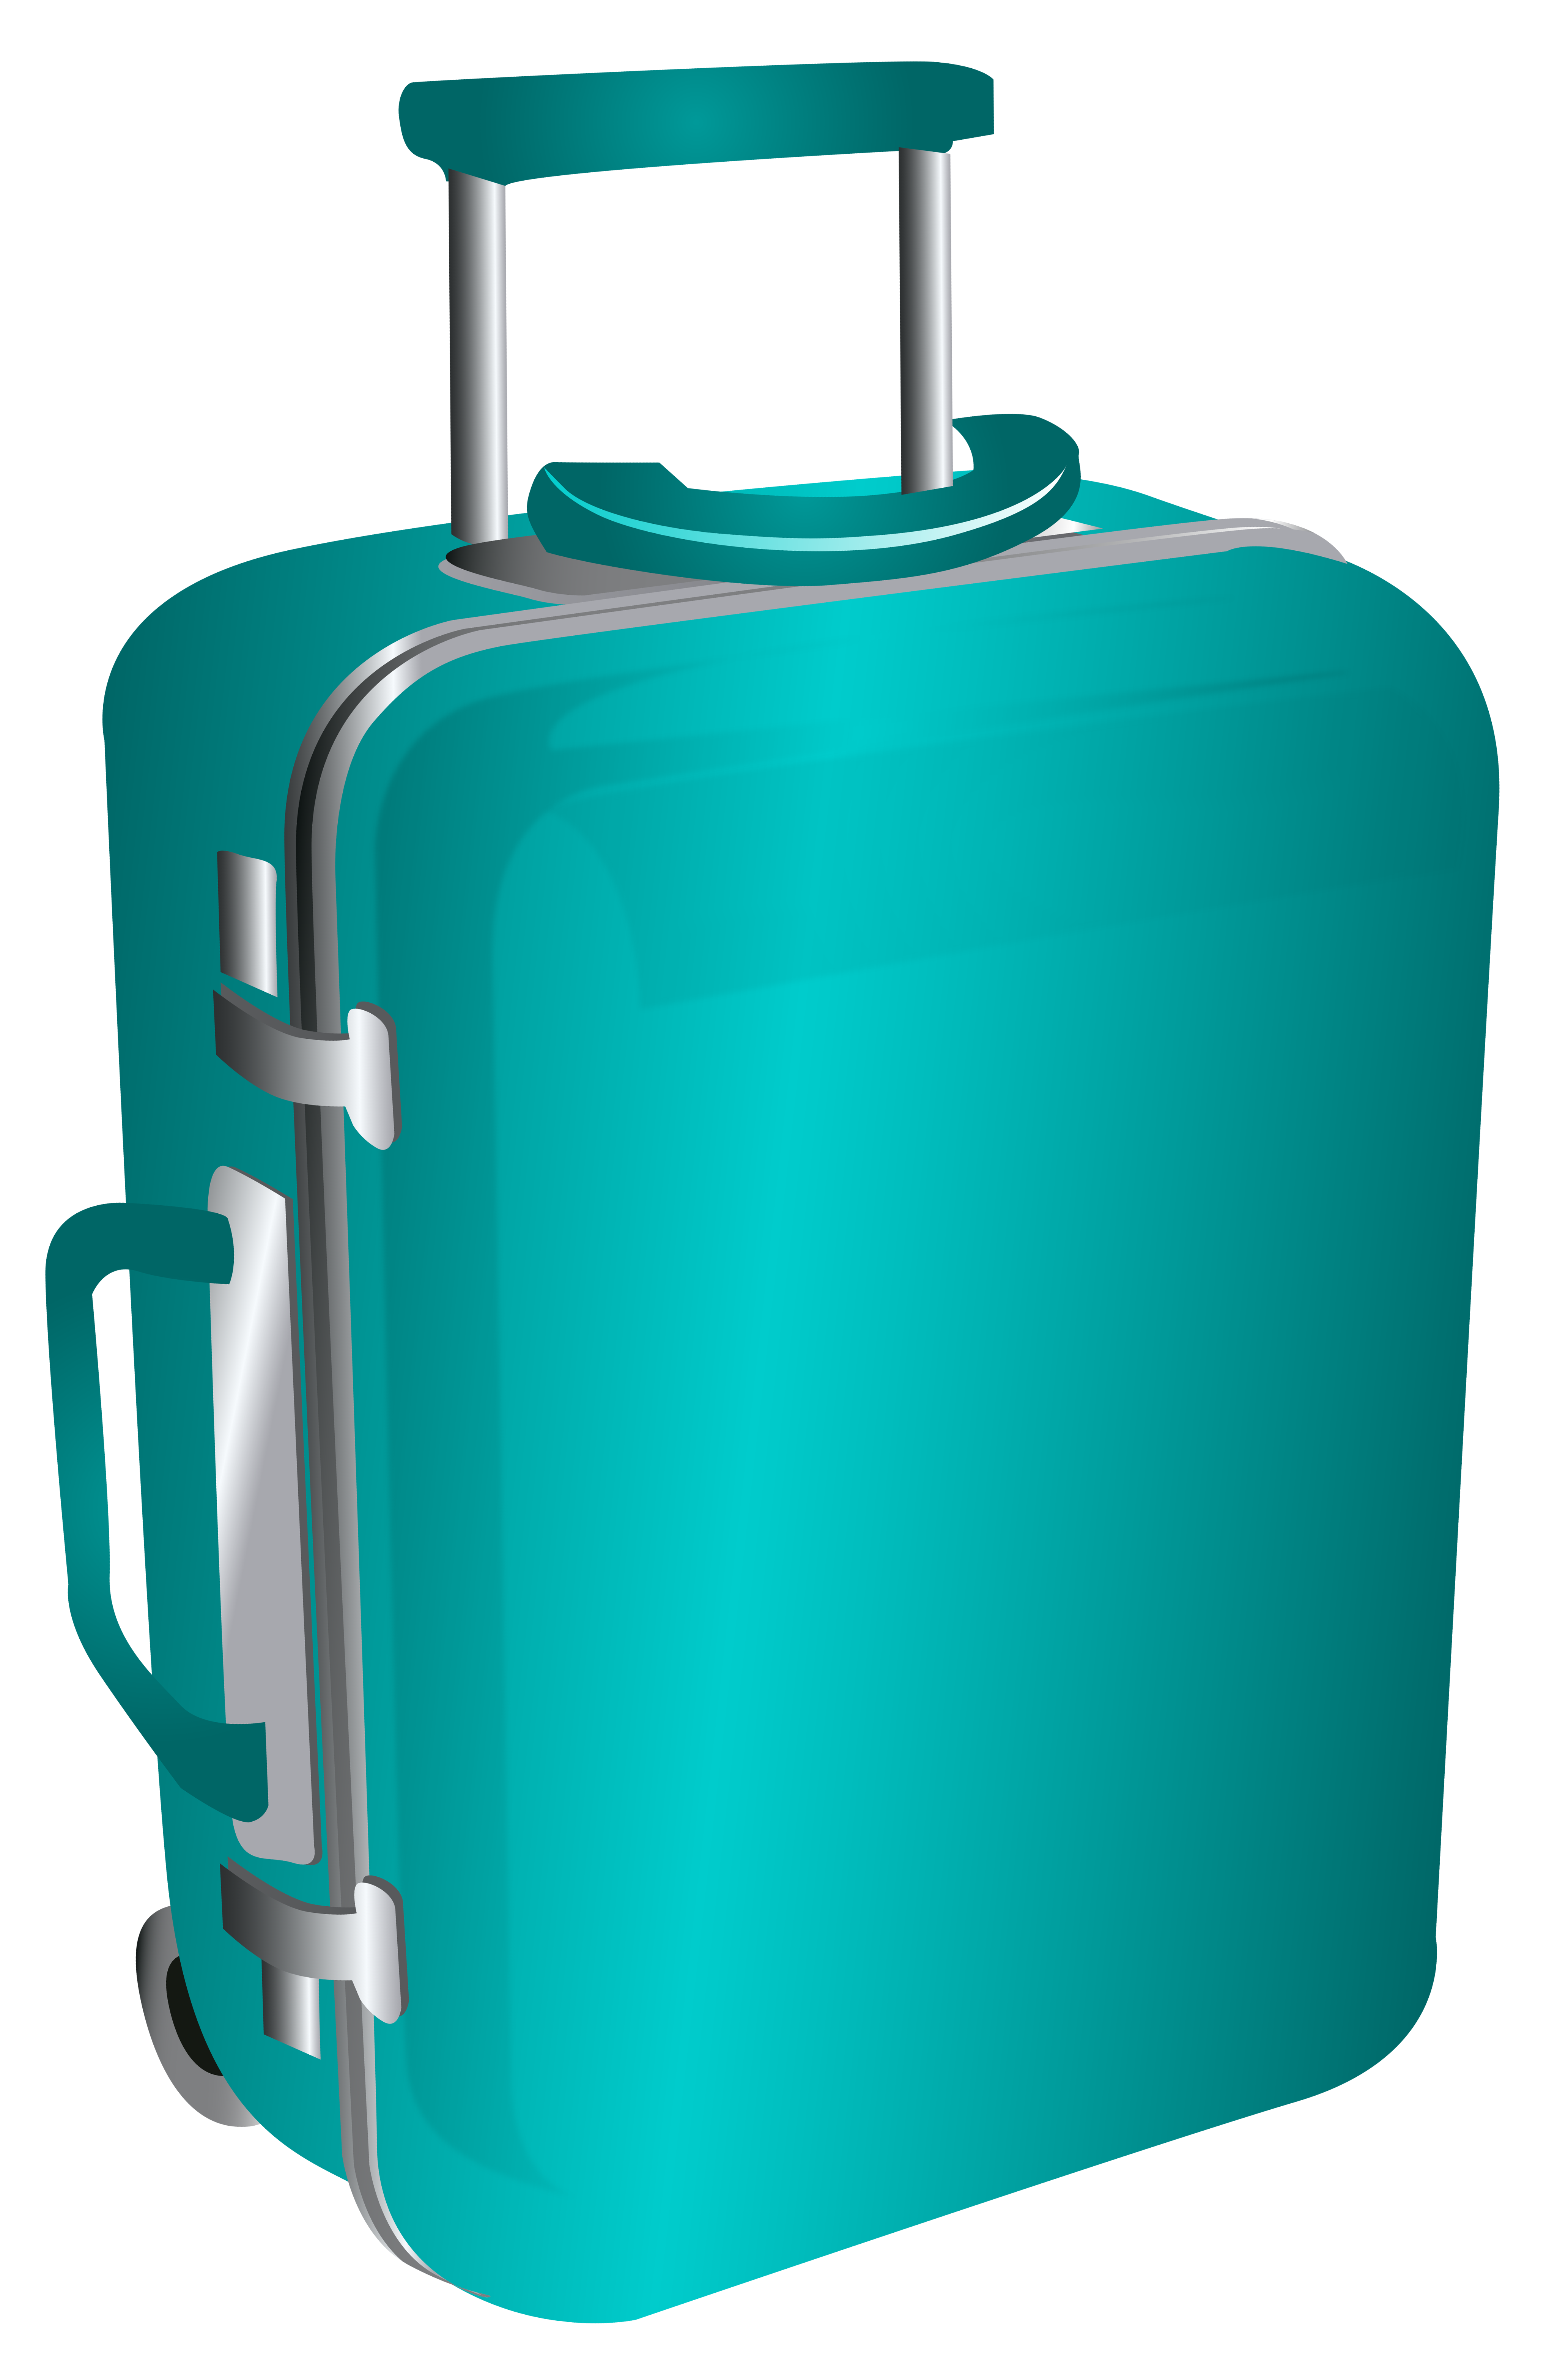 Luggage bag clipart image royalty free stock Free Cliparts Travel Luggage, Download Free Clip Art, Free Clip Art ... image royalty free stock